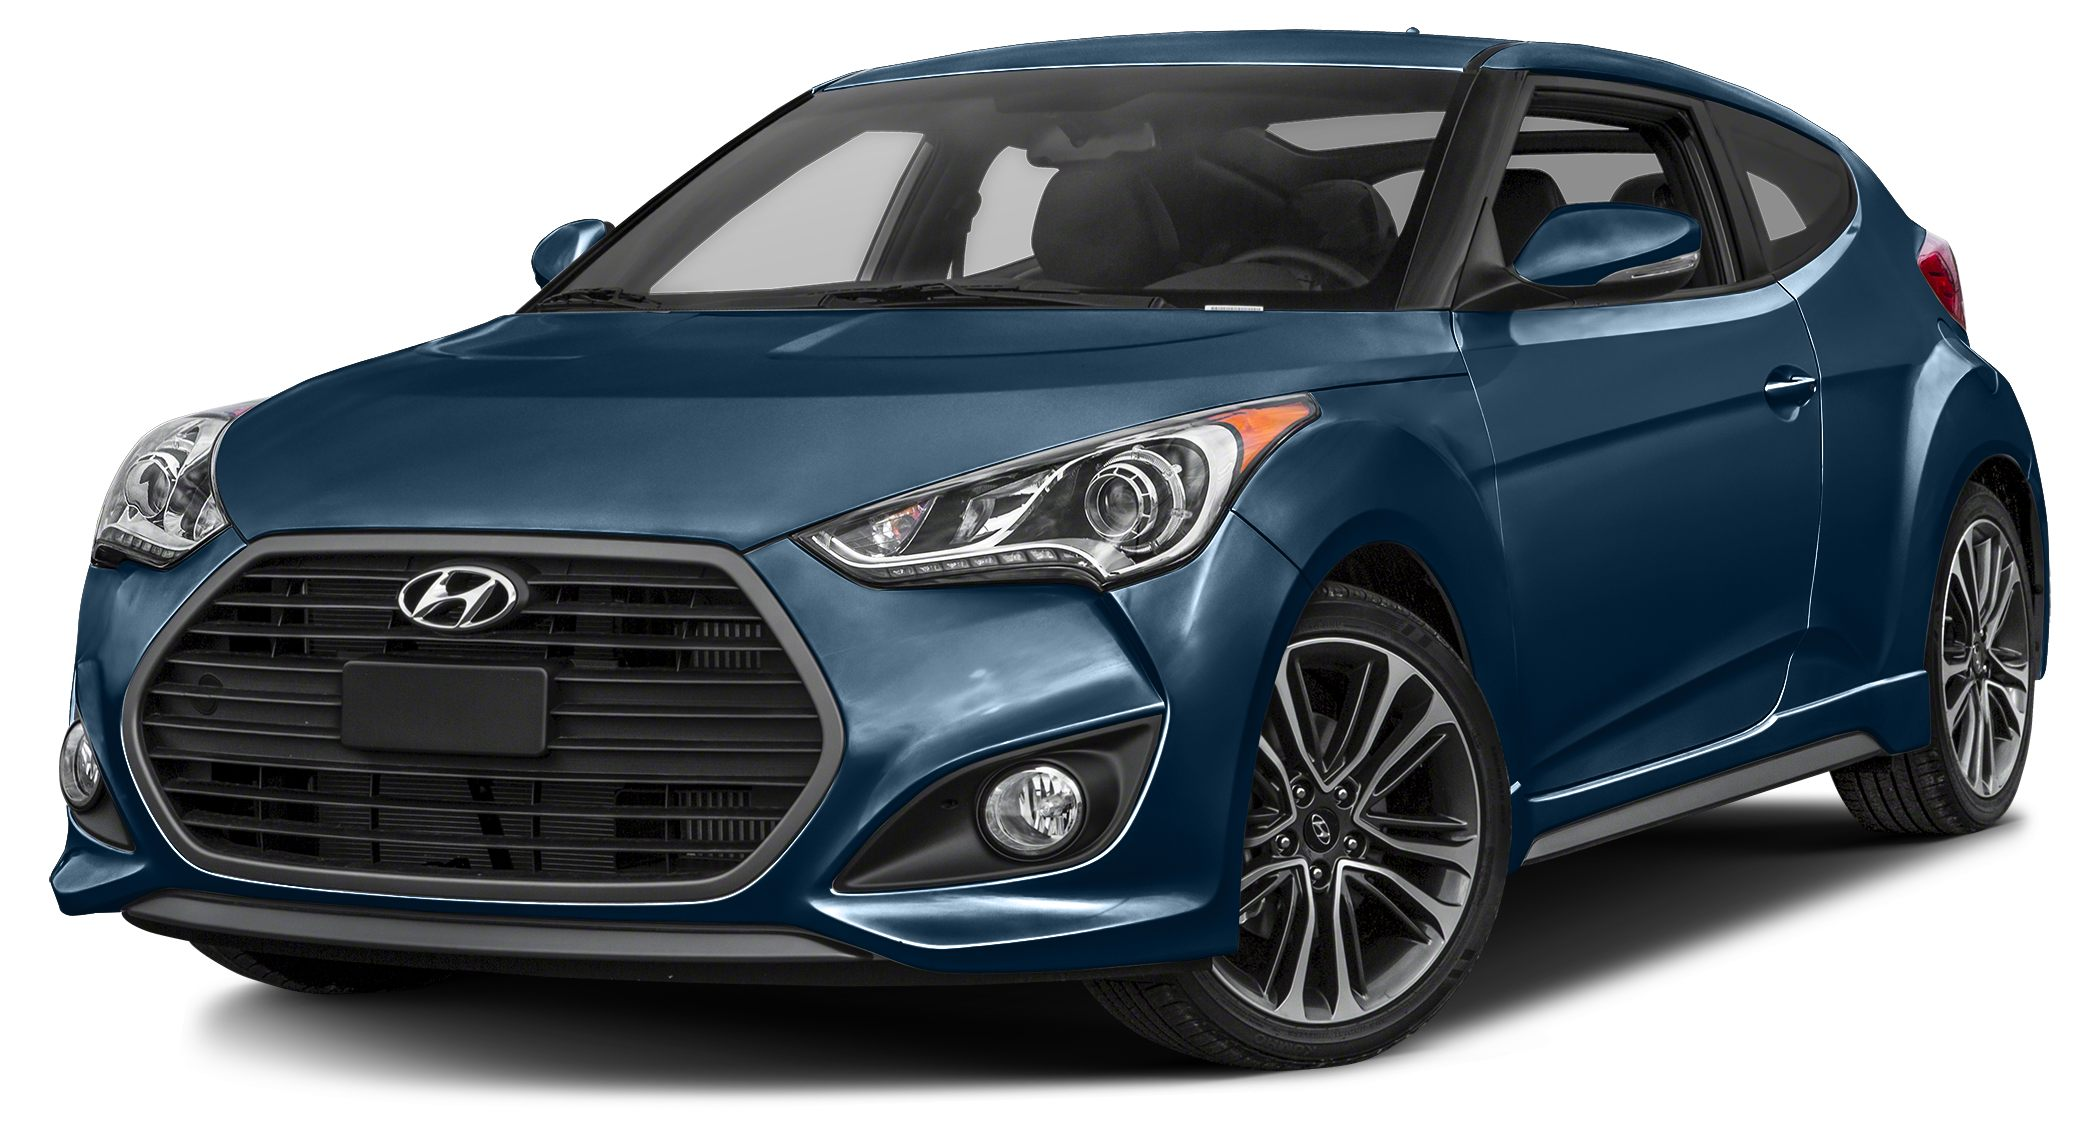 2016 Hyundai Veloster Turbo 6-Speed Manual Transmission 16L Turbo GDI 201 HP 195 lbs-ft Torque